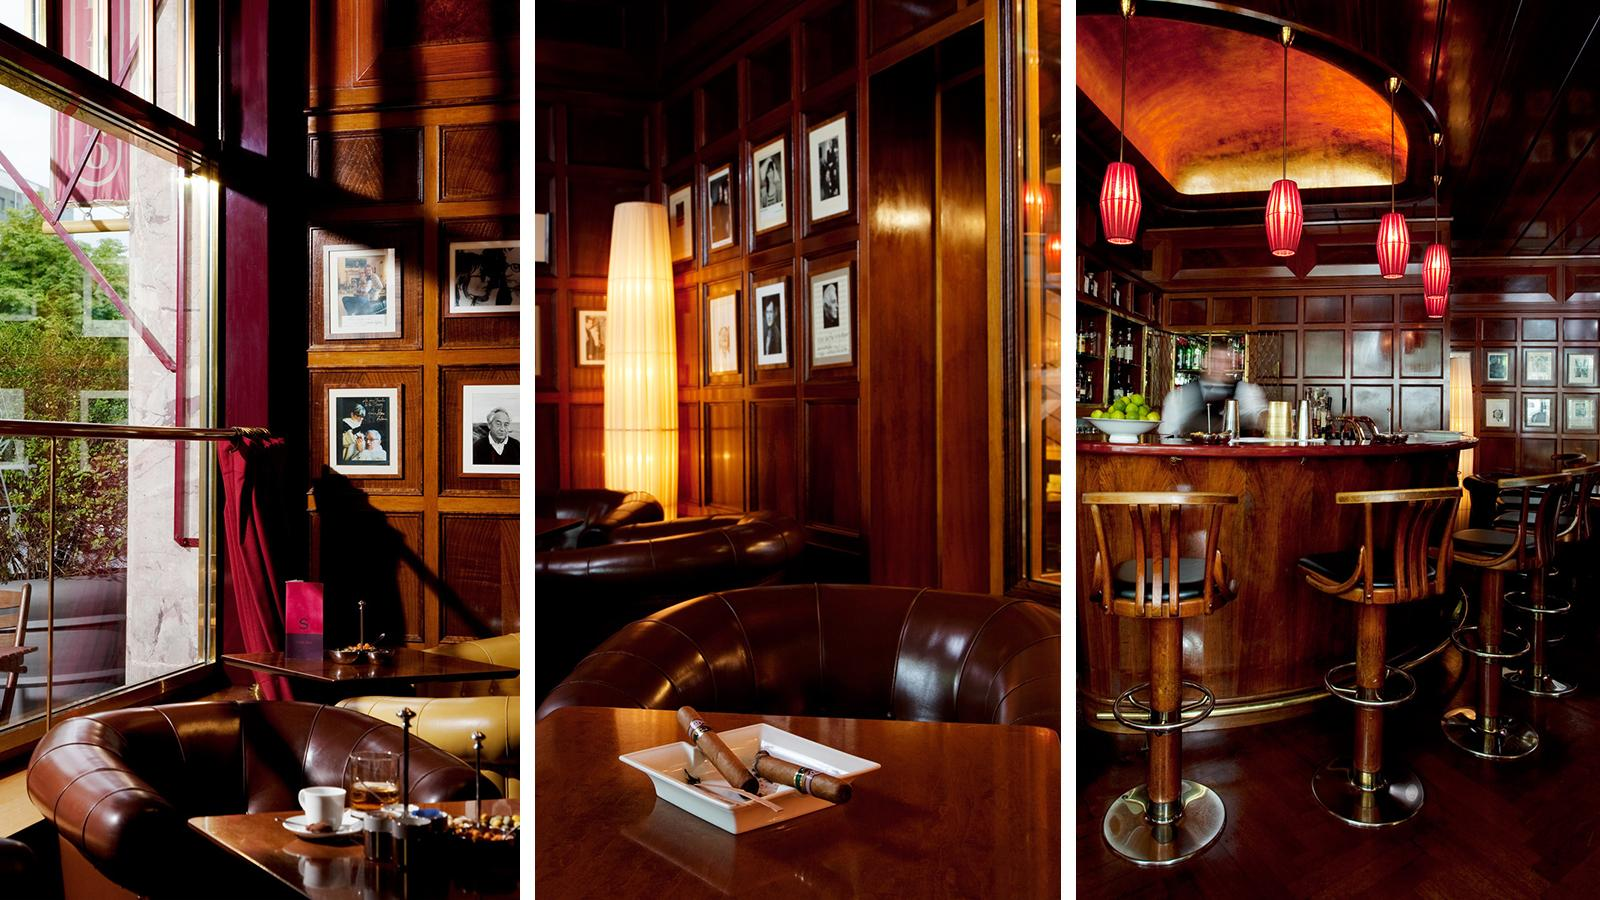 The Times Bar opened in 1957 inside Berlin's historic Savoy Hotel.